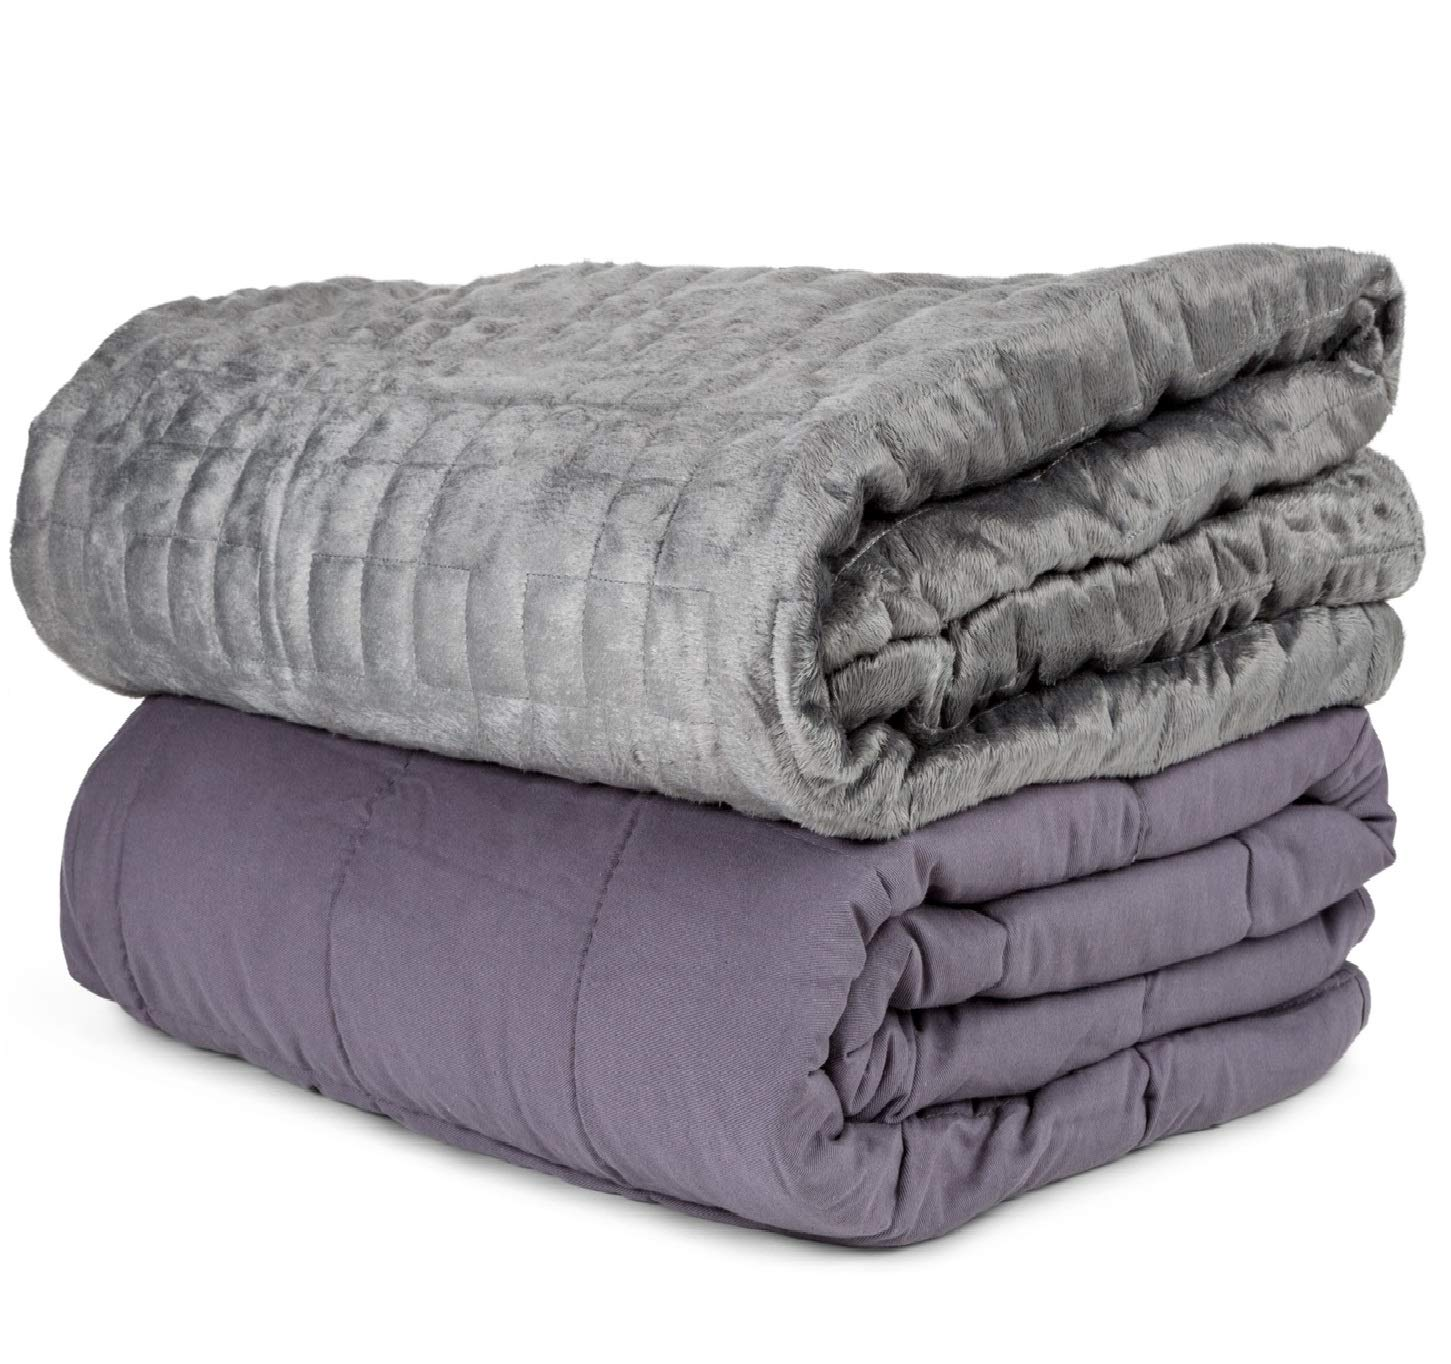 aviano 20lbs weighted blanket 100 cotton with plush microfiber duvet cover 659193182651 ebay. Black Bedroom Furniture Sets. Home Design Ideas